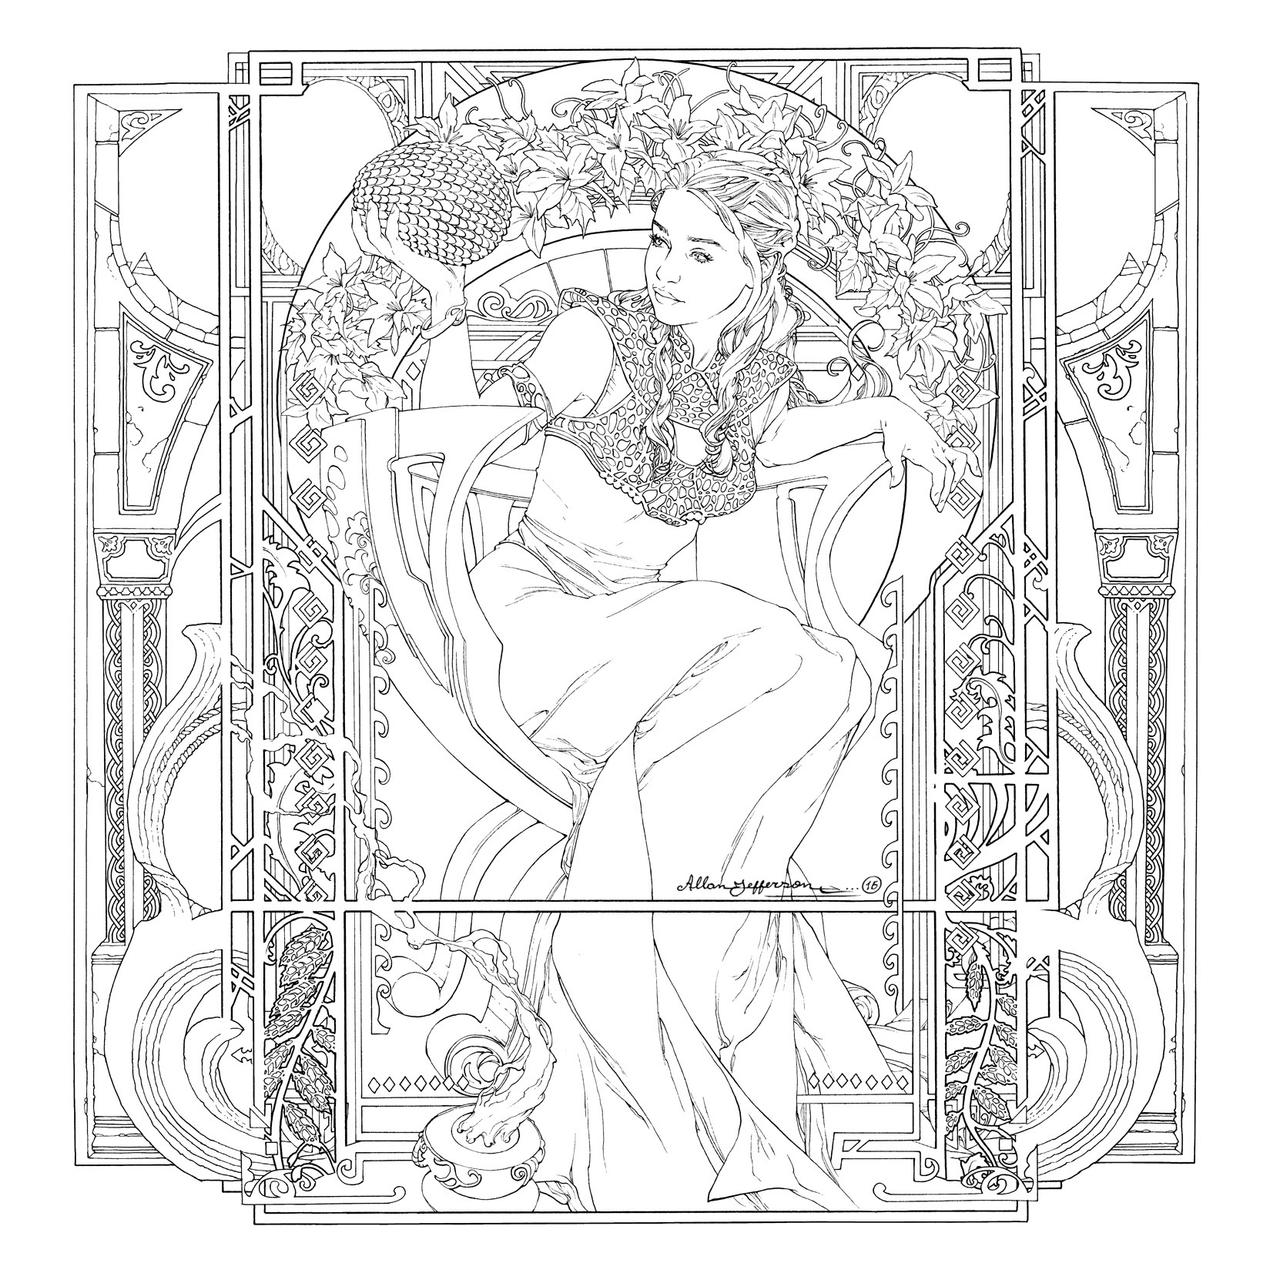 game of thrones coloring pages game of thrones coloring pages coloring pages to pages of thrones game coloring